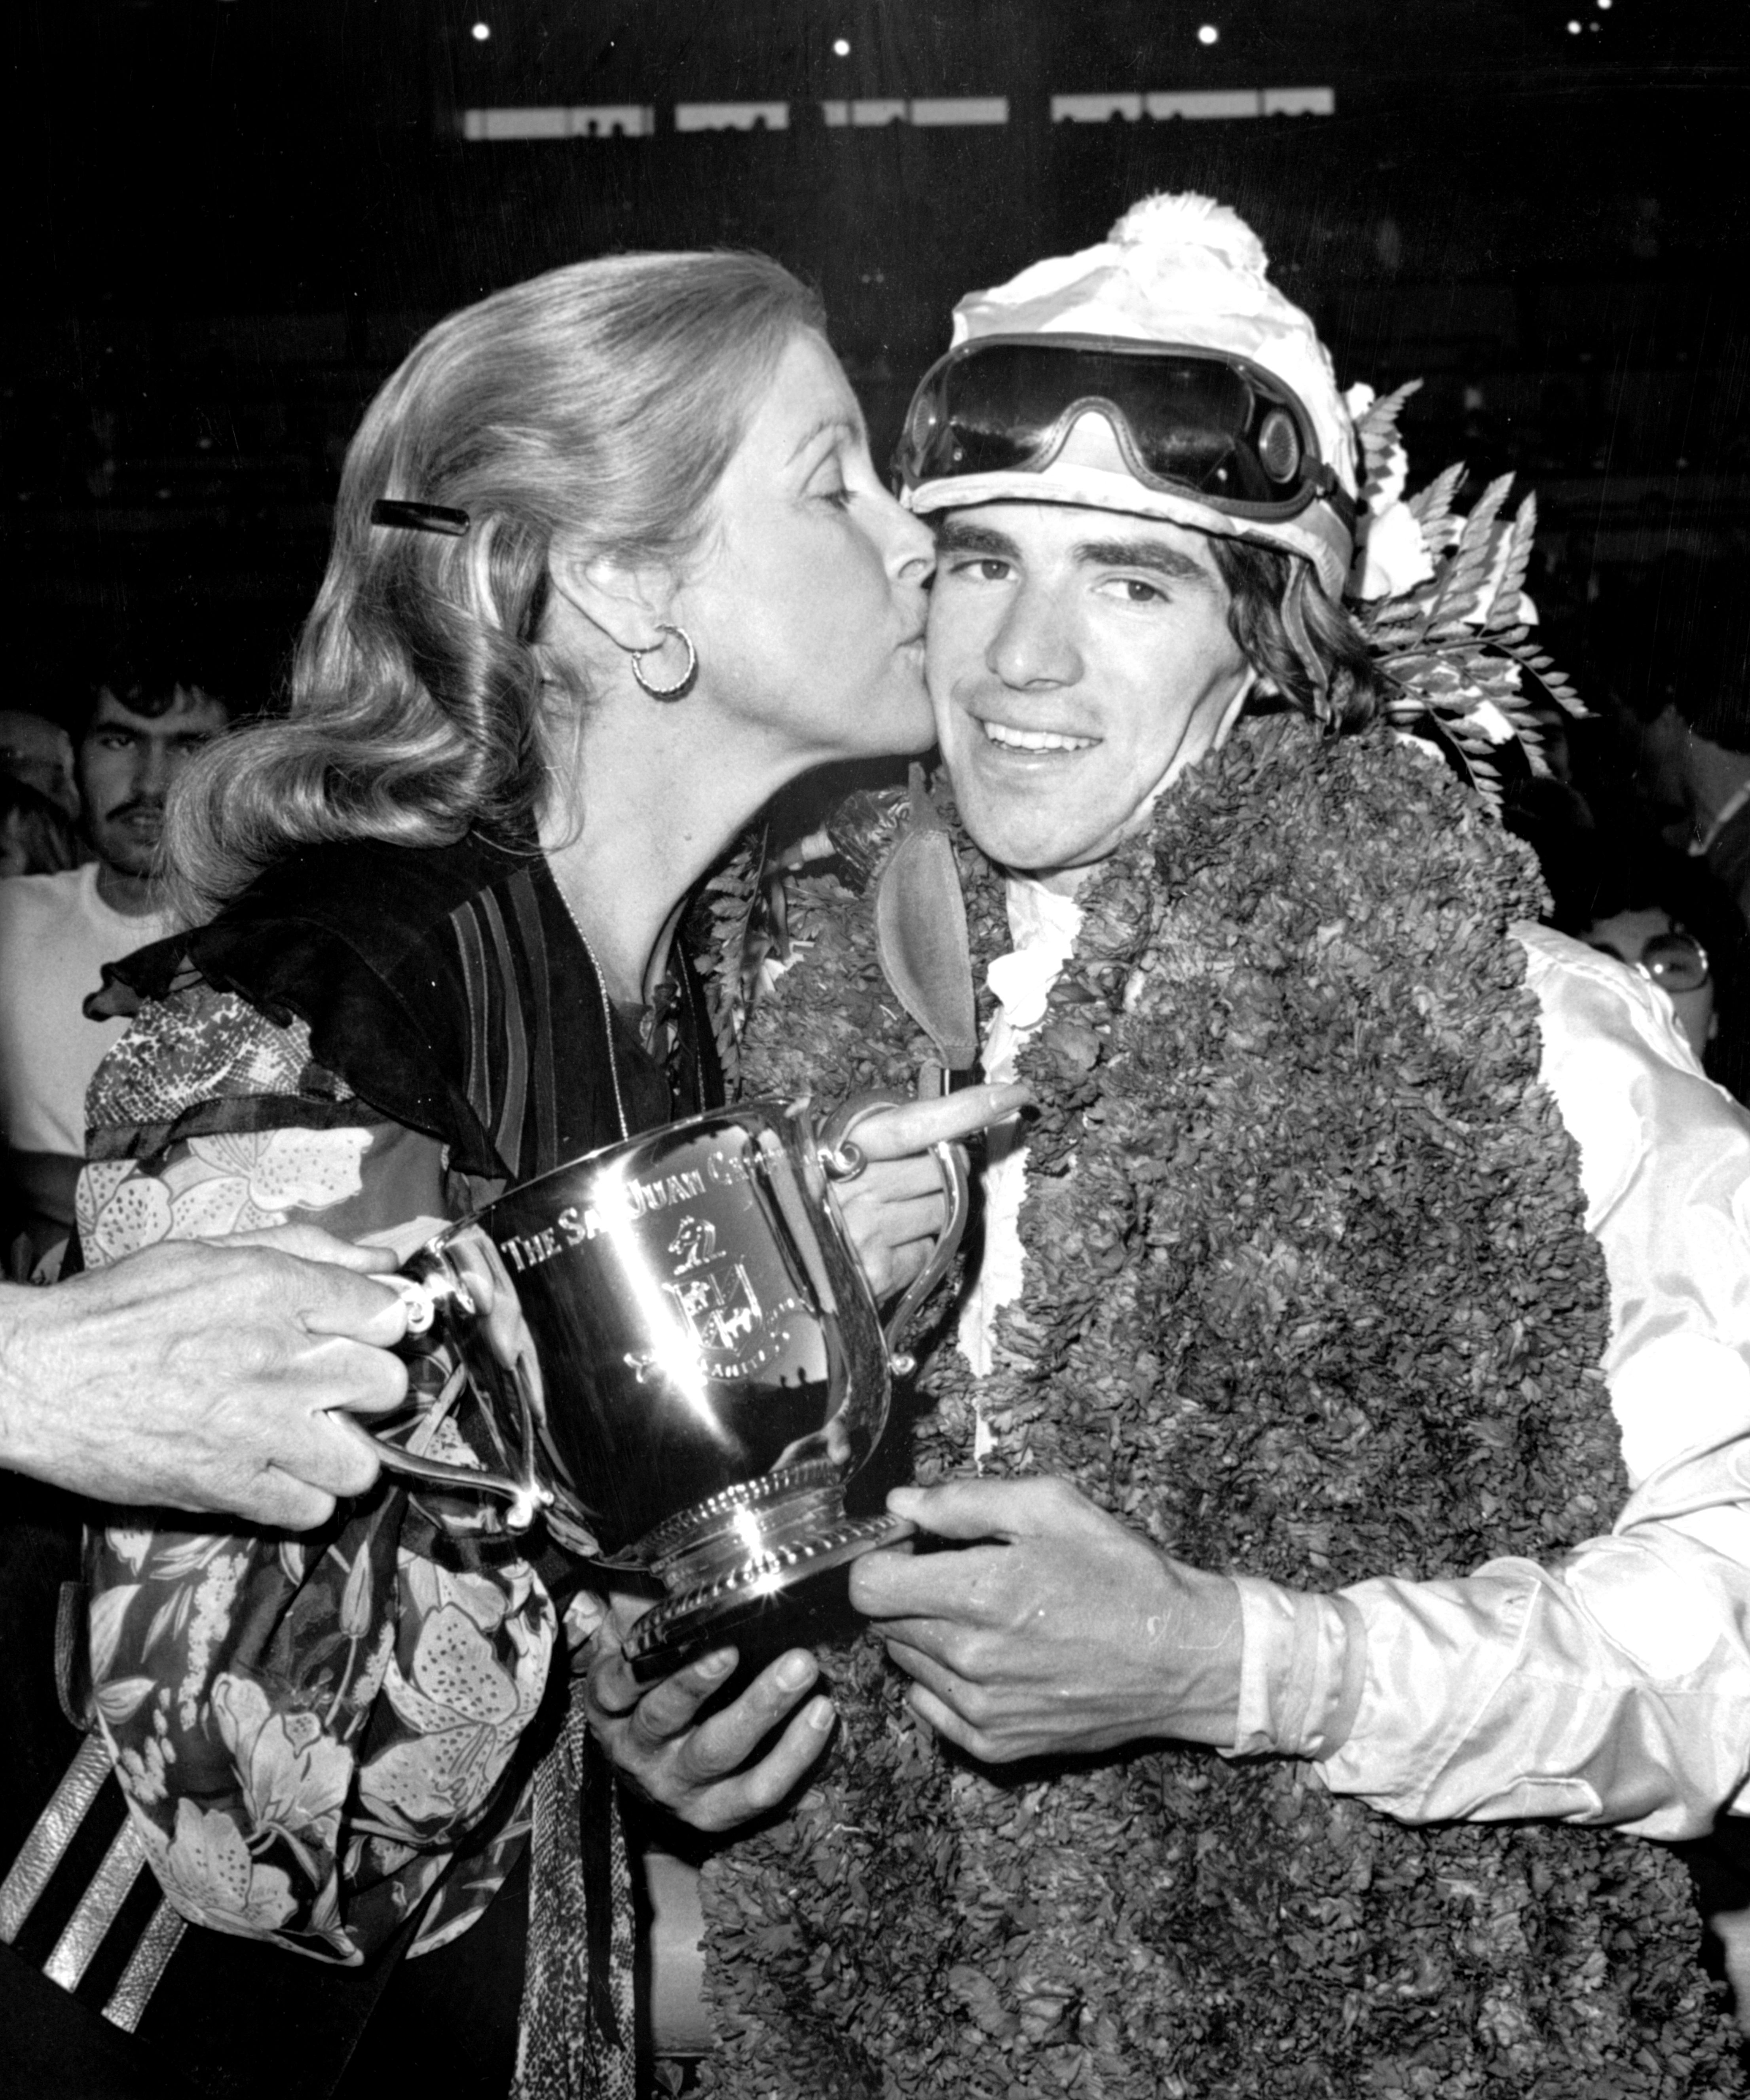 Darrel McHargue receives a kiss from Jacqueline Getty after winning the 1977 San Juan Capistrano Handicap (Keeneland Library Thoroughbred Times Collection)